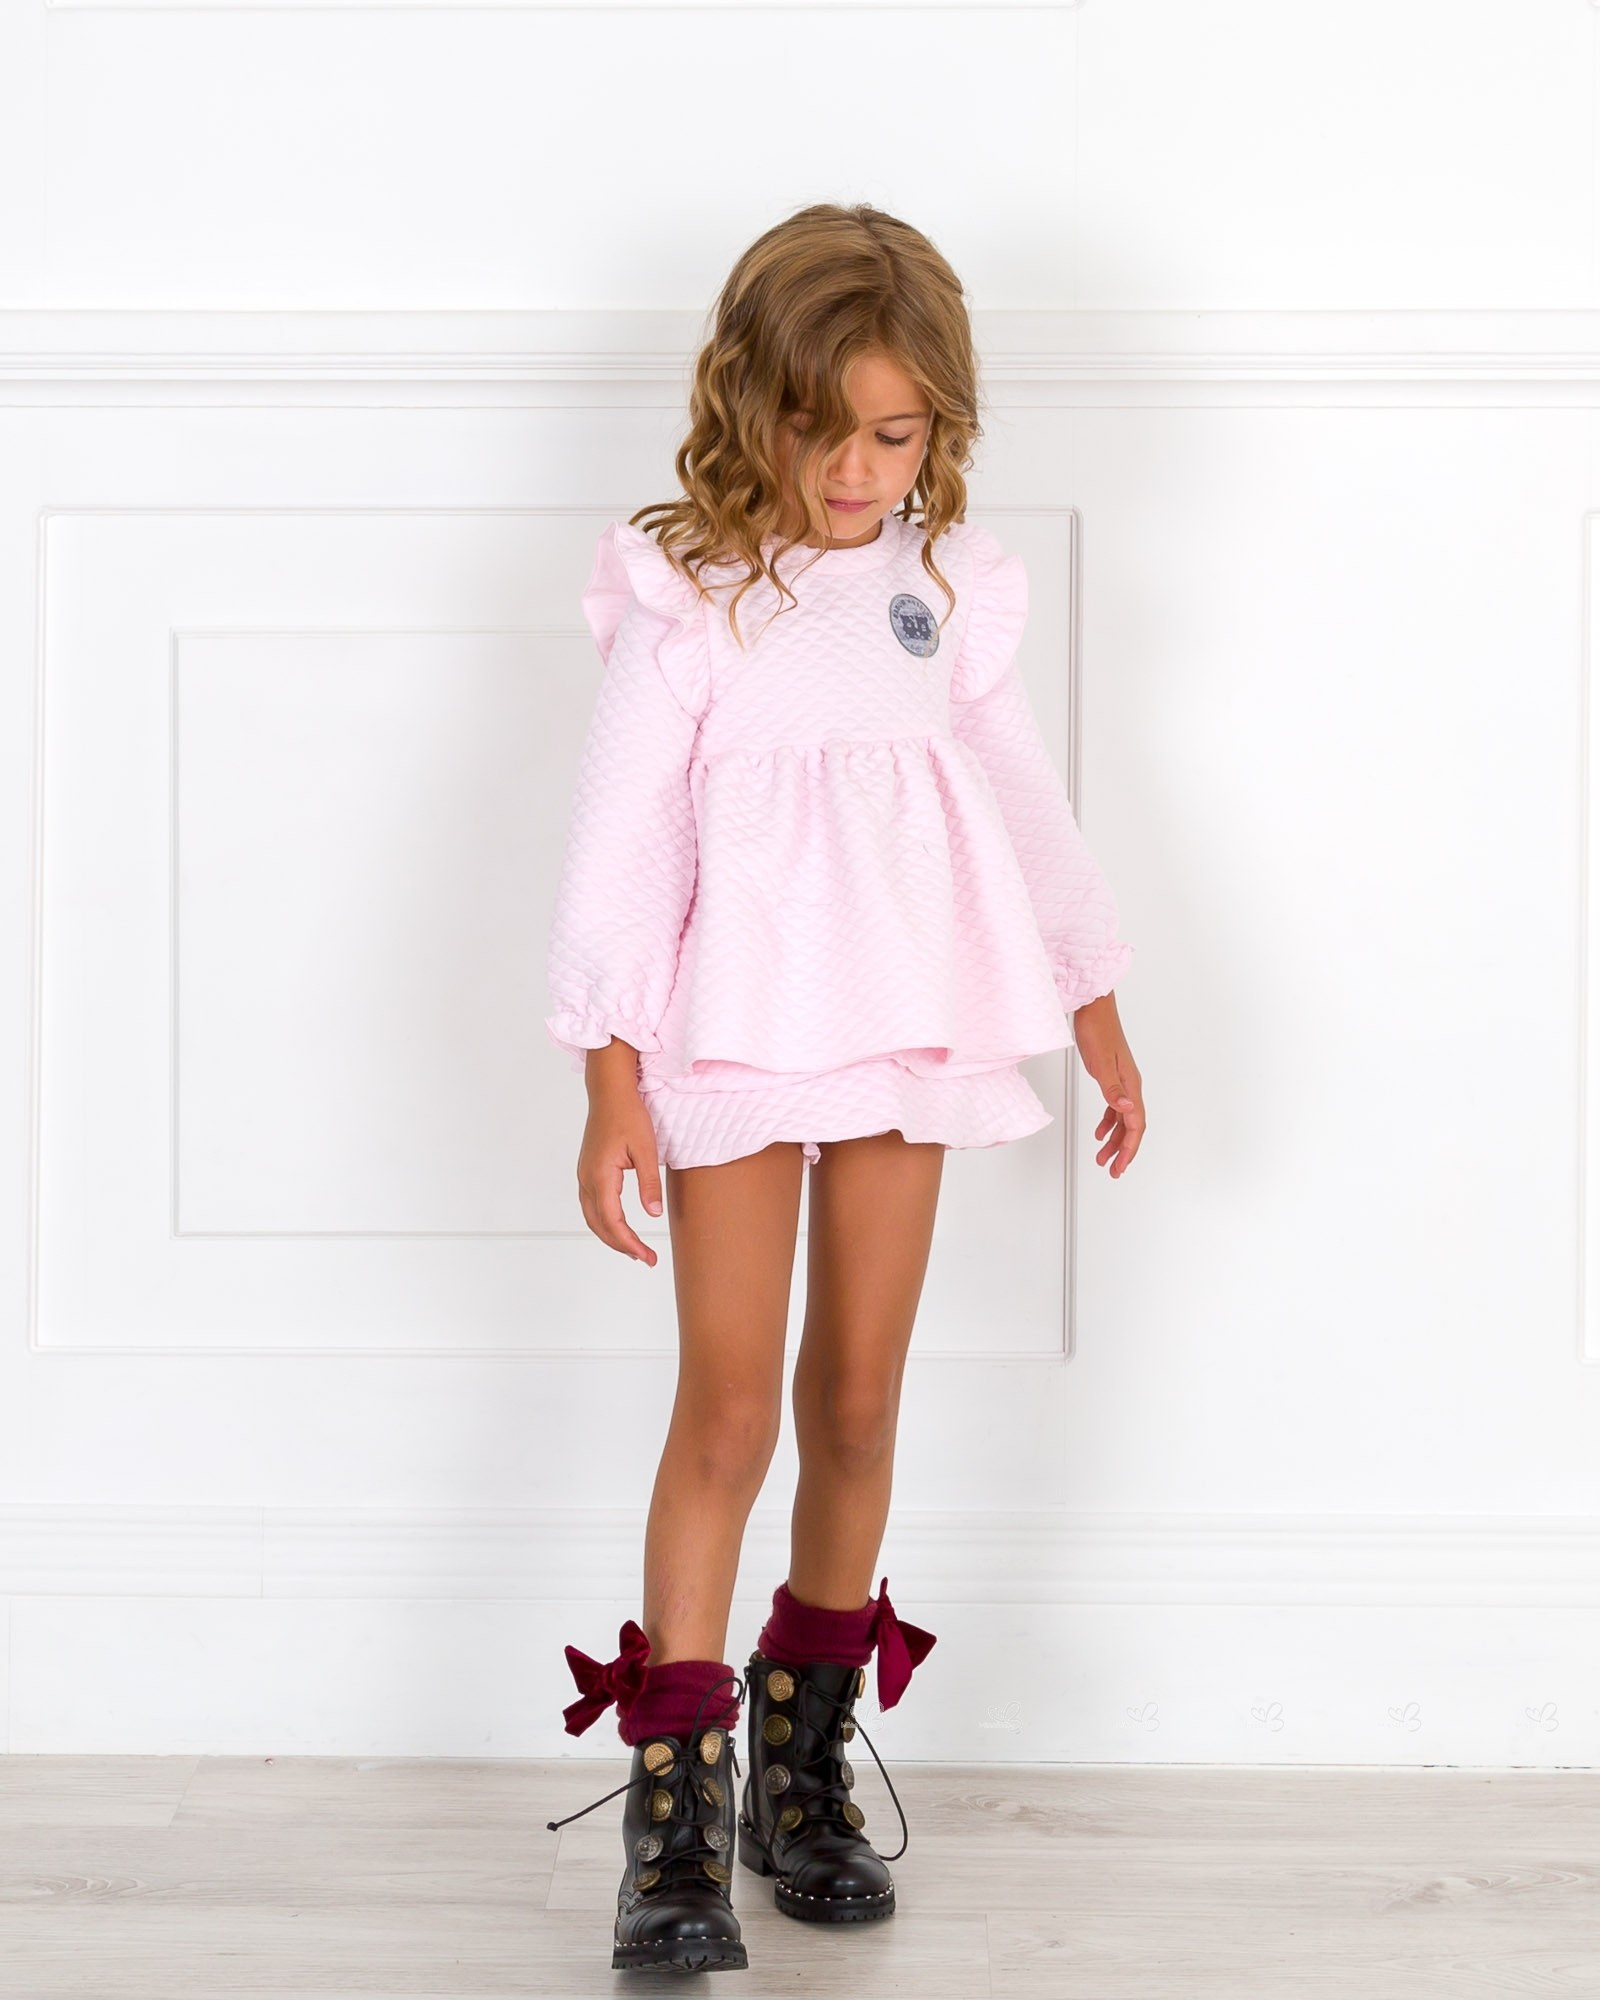 Sweatshirtamp; Collection Girls Pink Skort Set Pop Ruffle Loli qpLVjUzMSG